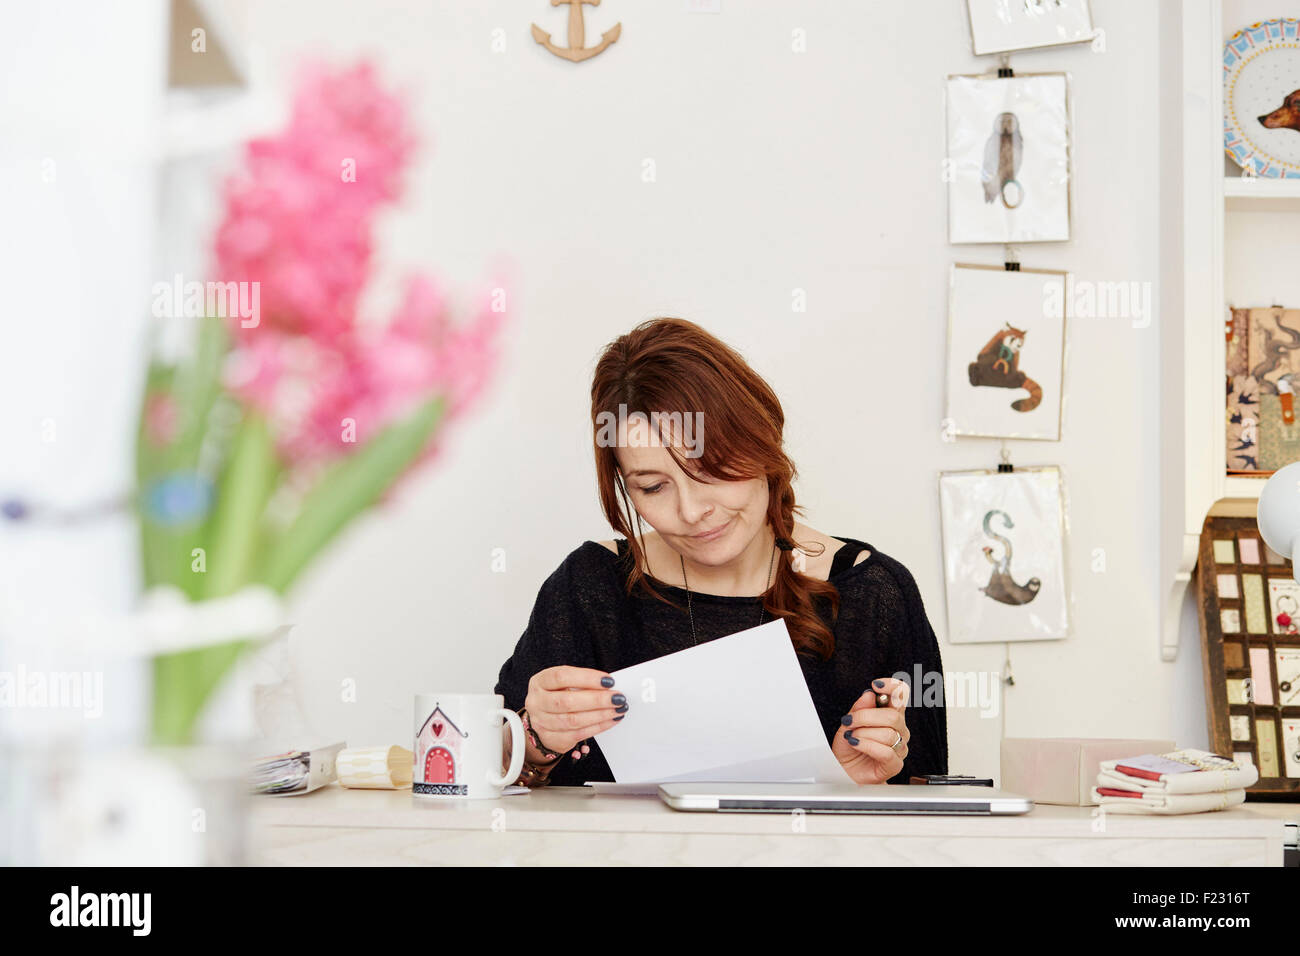 A woman sitting at a desk in a small gift shop, doing the paperwork, managing the business. A laptop on the desk. - Stock Image